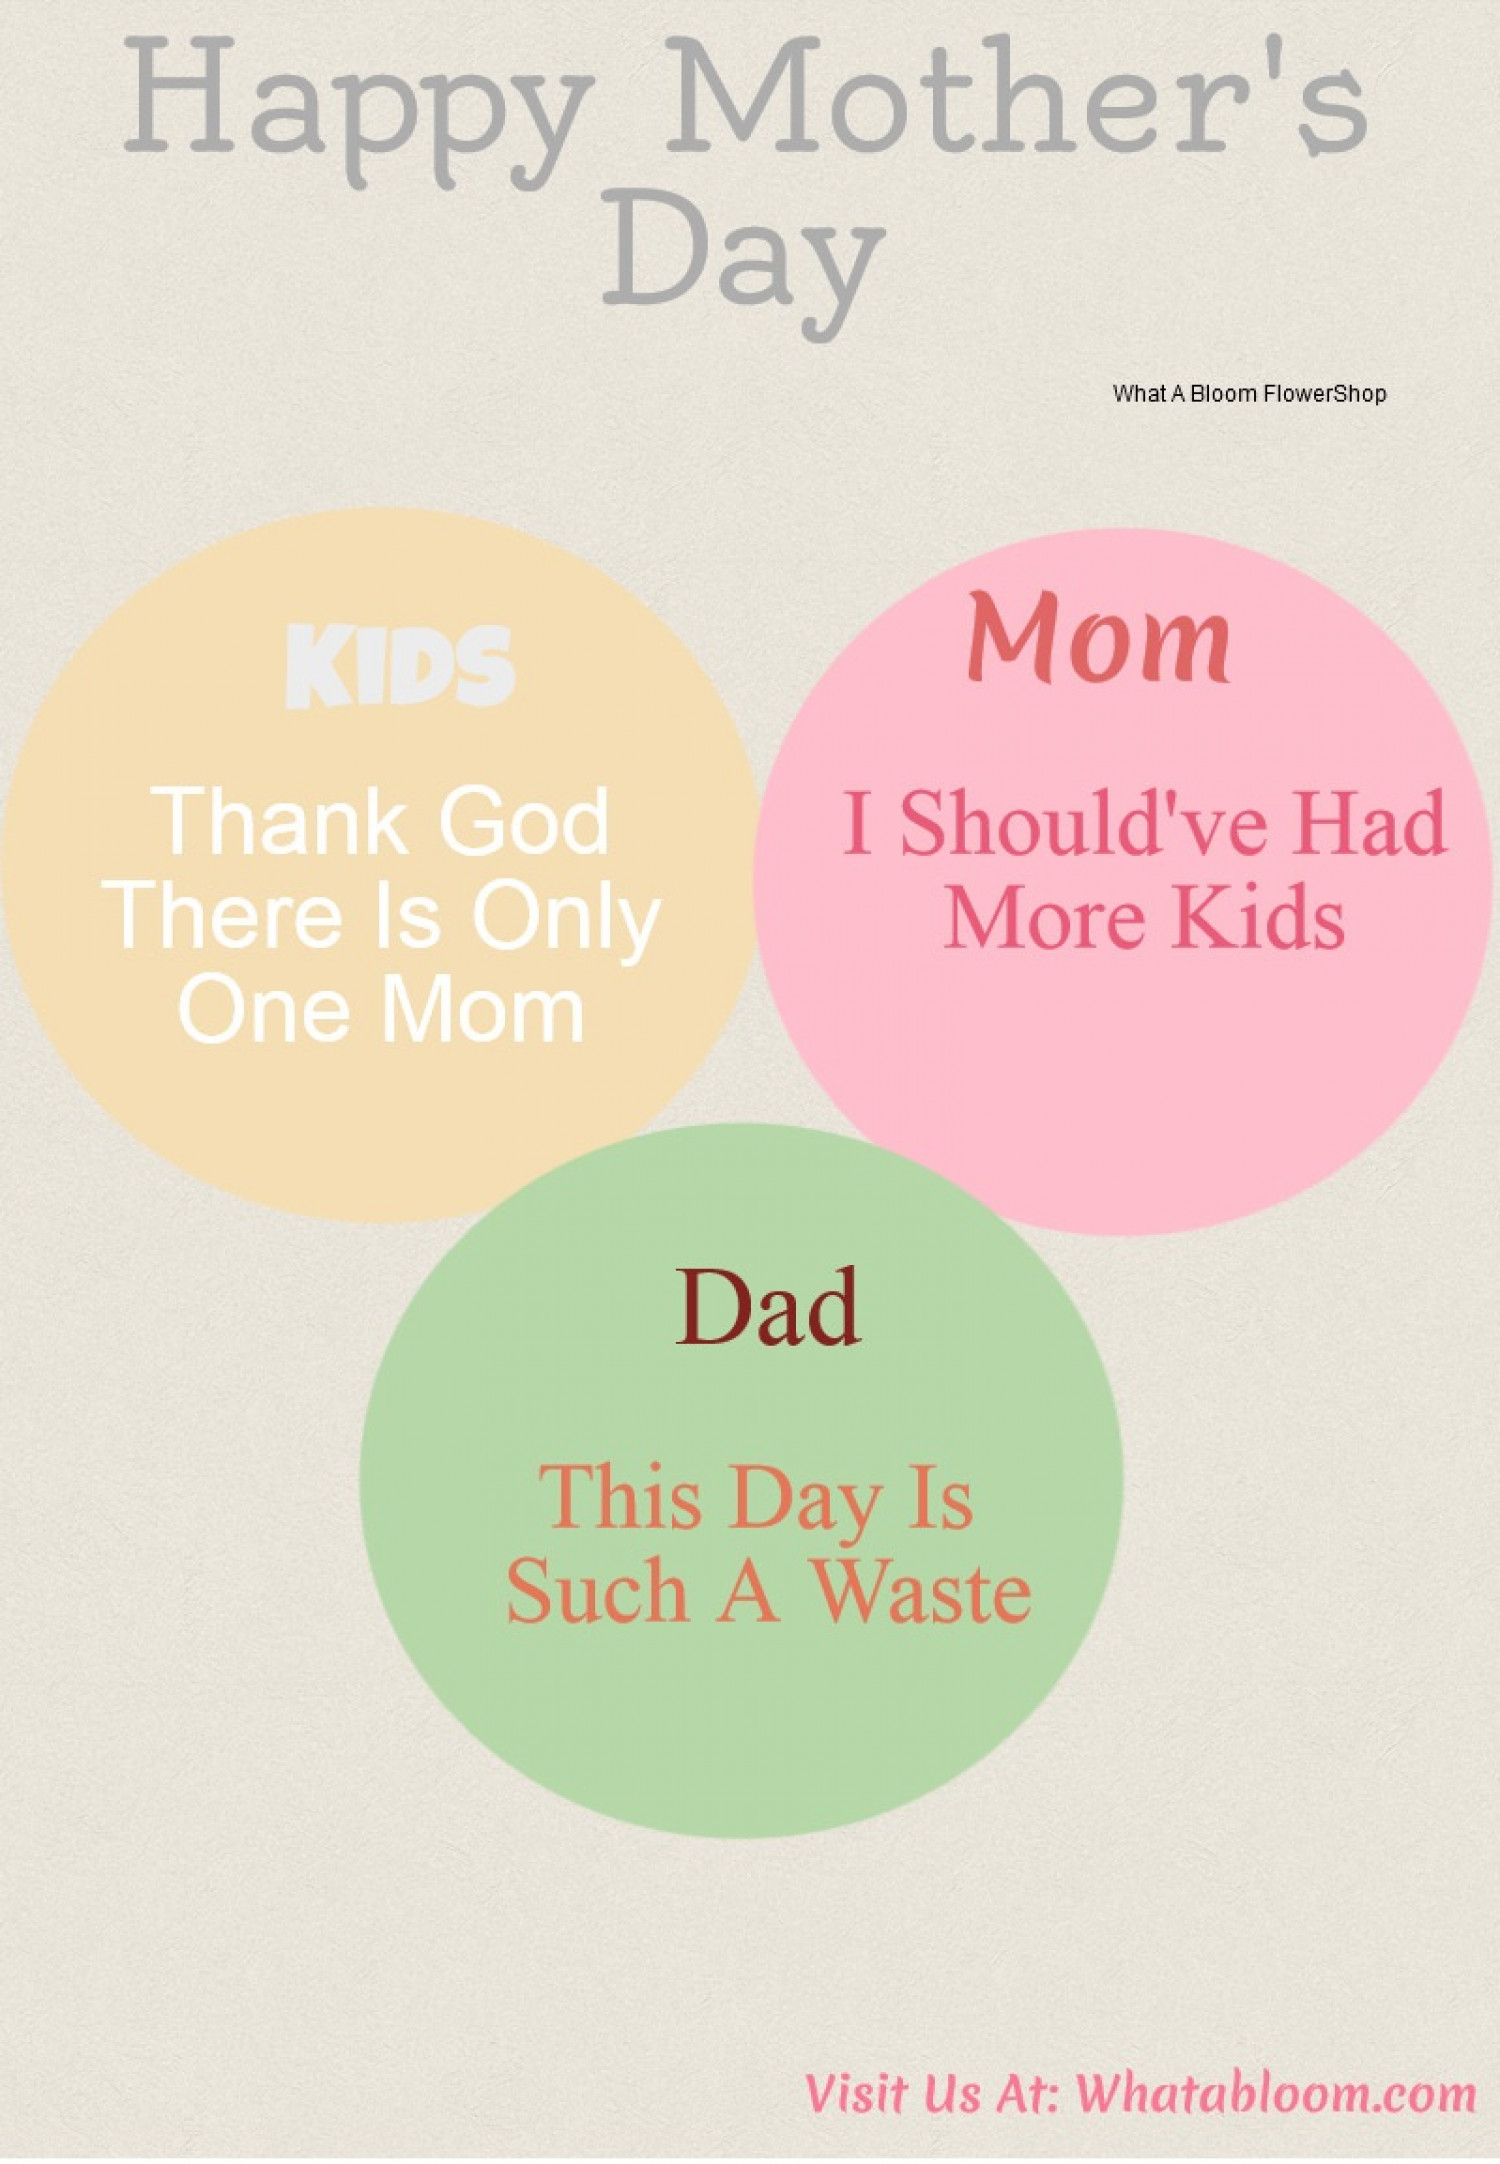 What the Whole Family Think About Mother